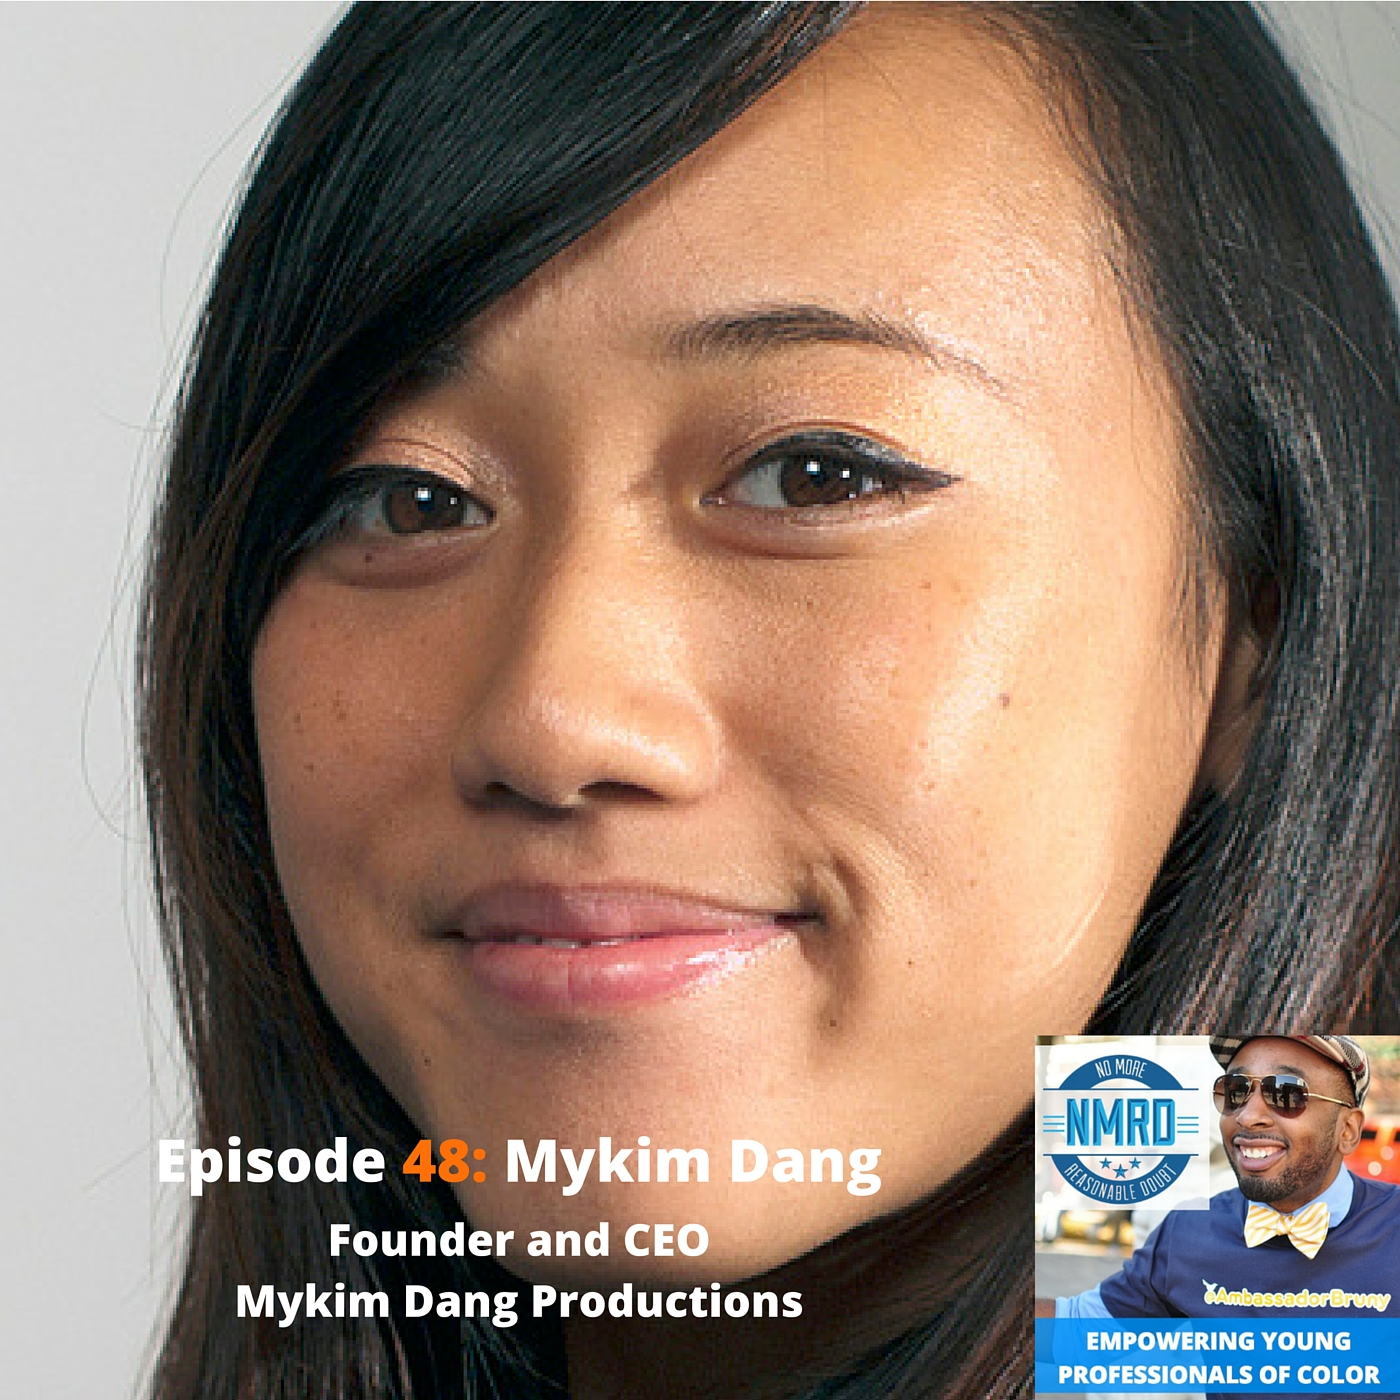 E48 – Mykim Dang | Founder and CEO | Mykim Dang Productions